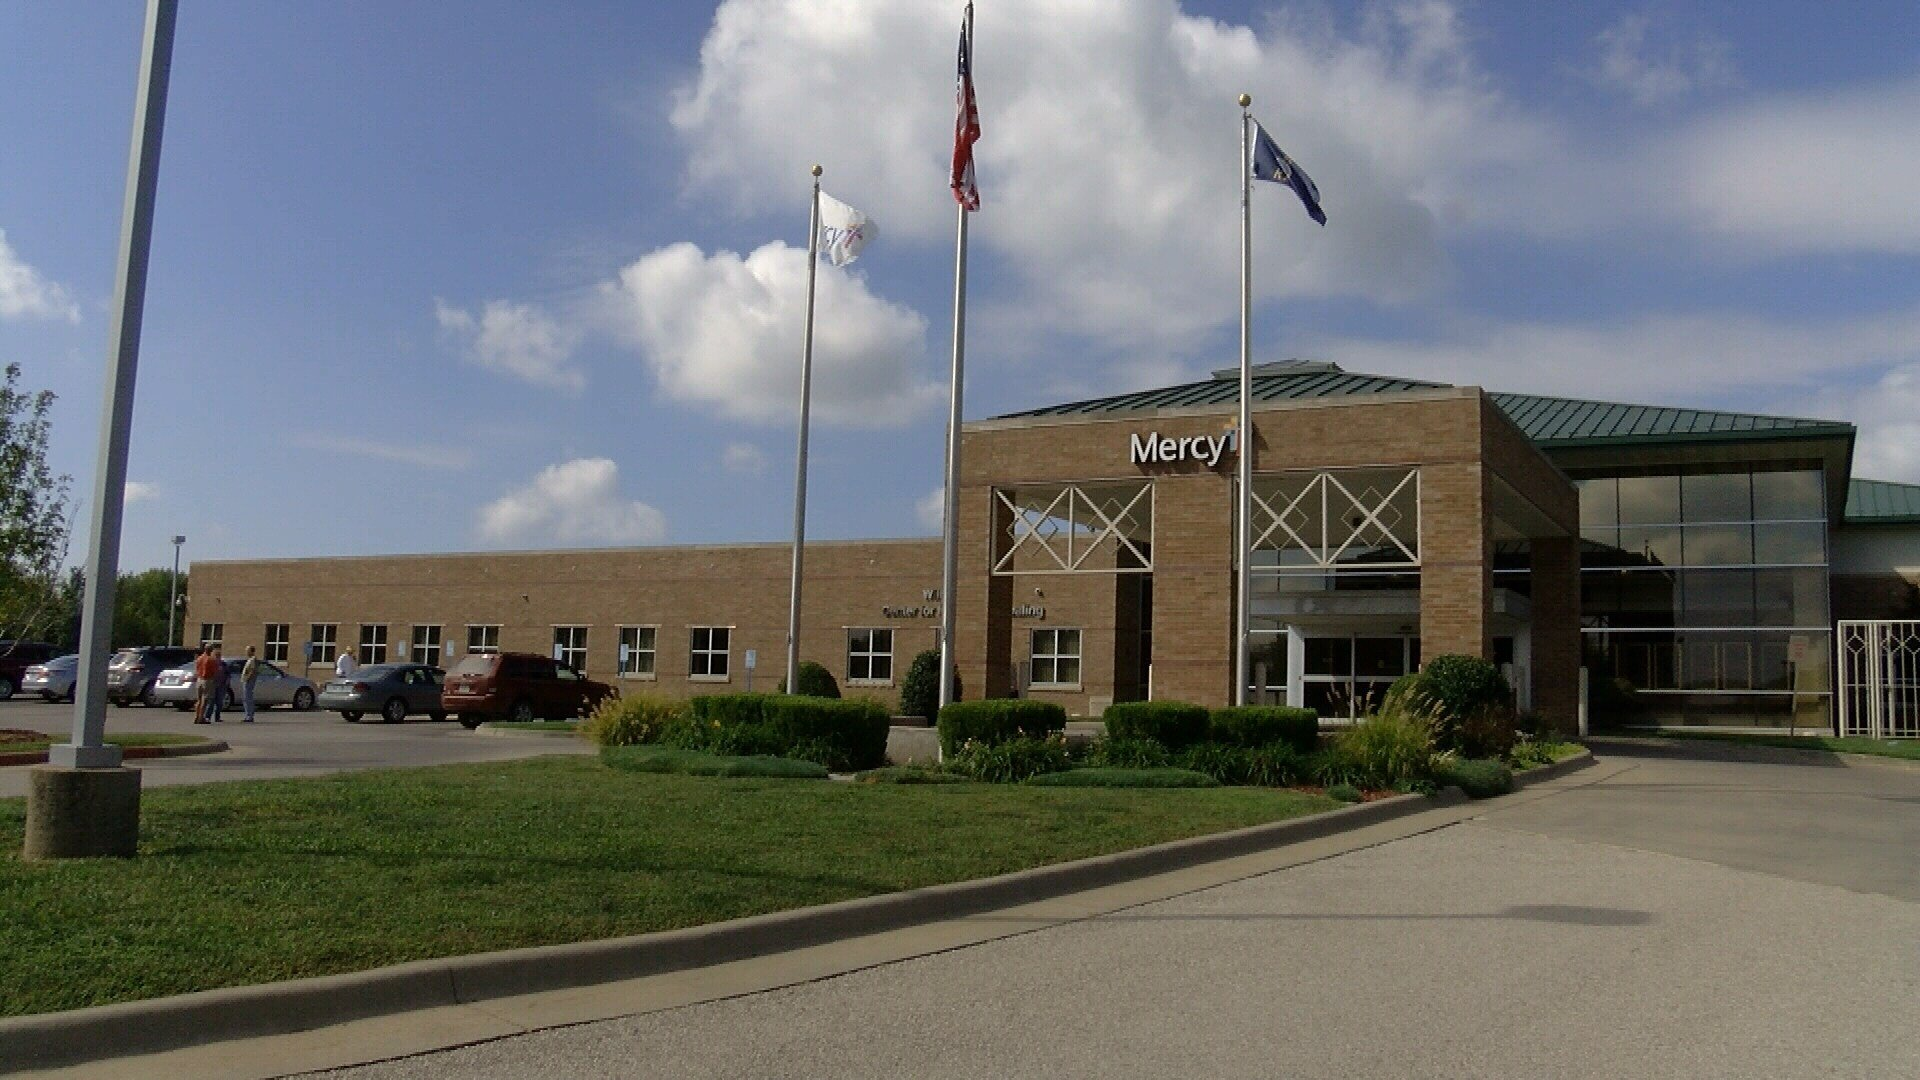 Mercy Hospital in Fort Scott, Kansas will close by the end of 2018